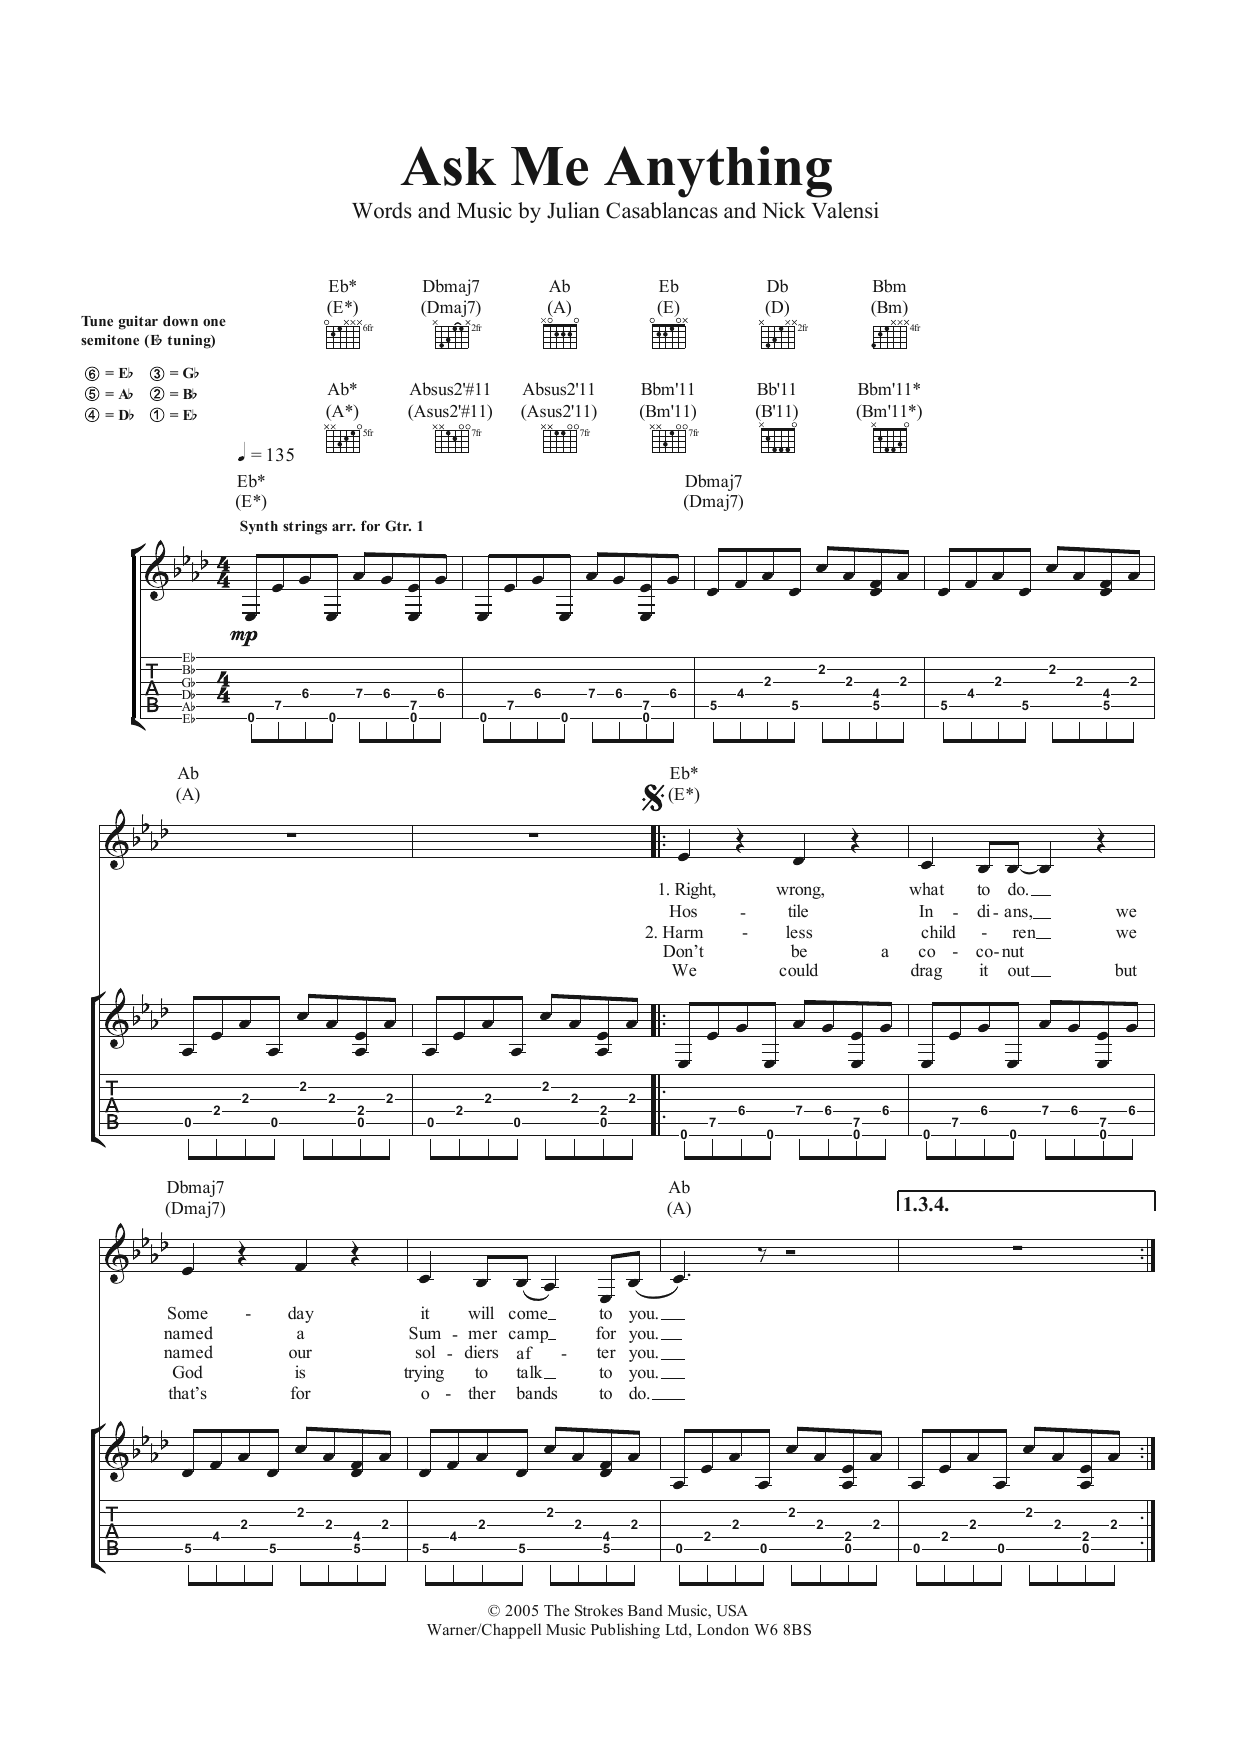 Ask Me Anything Sheet Music | The Strokes | Guitar Tab